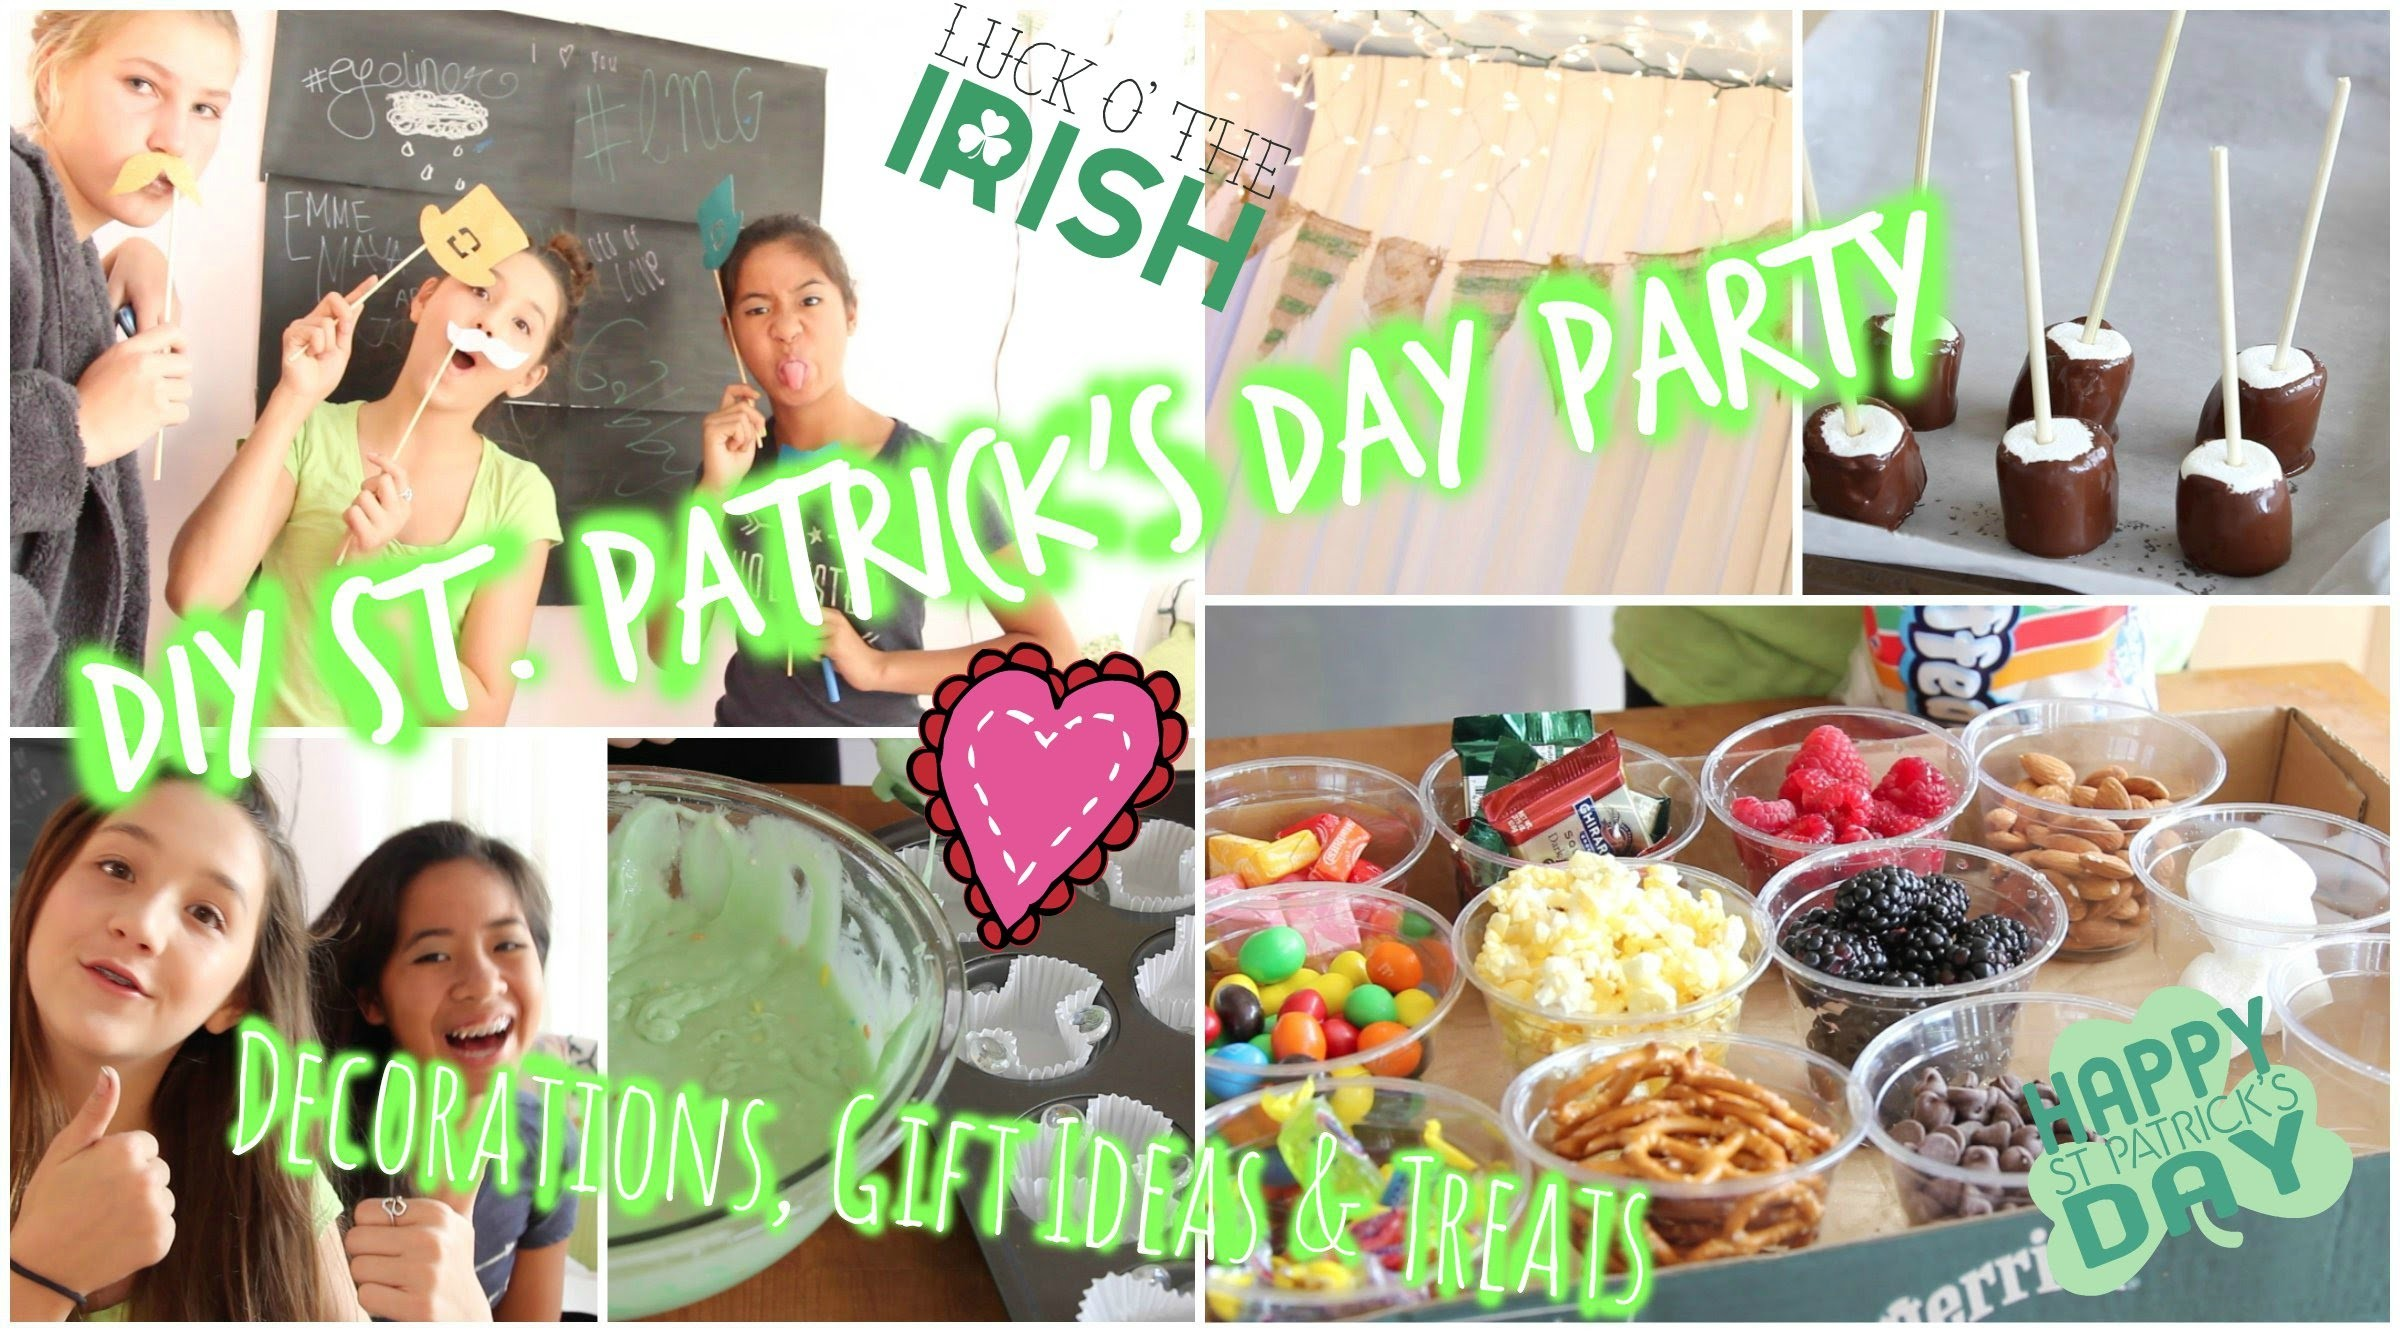 DIY St  Patrick's Day Party: Decorations, Gift Ideas & Treats